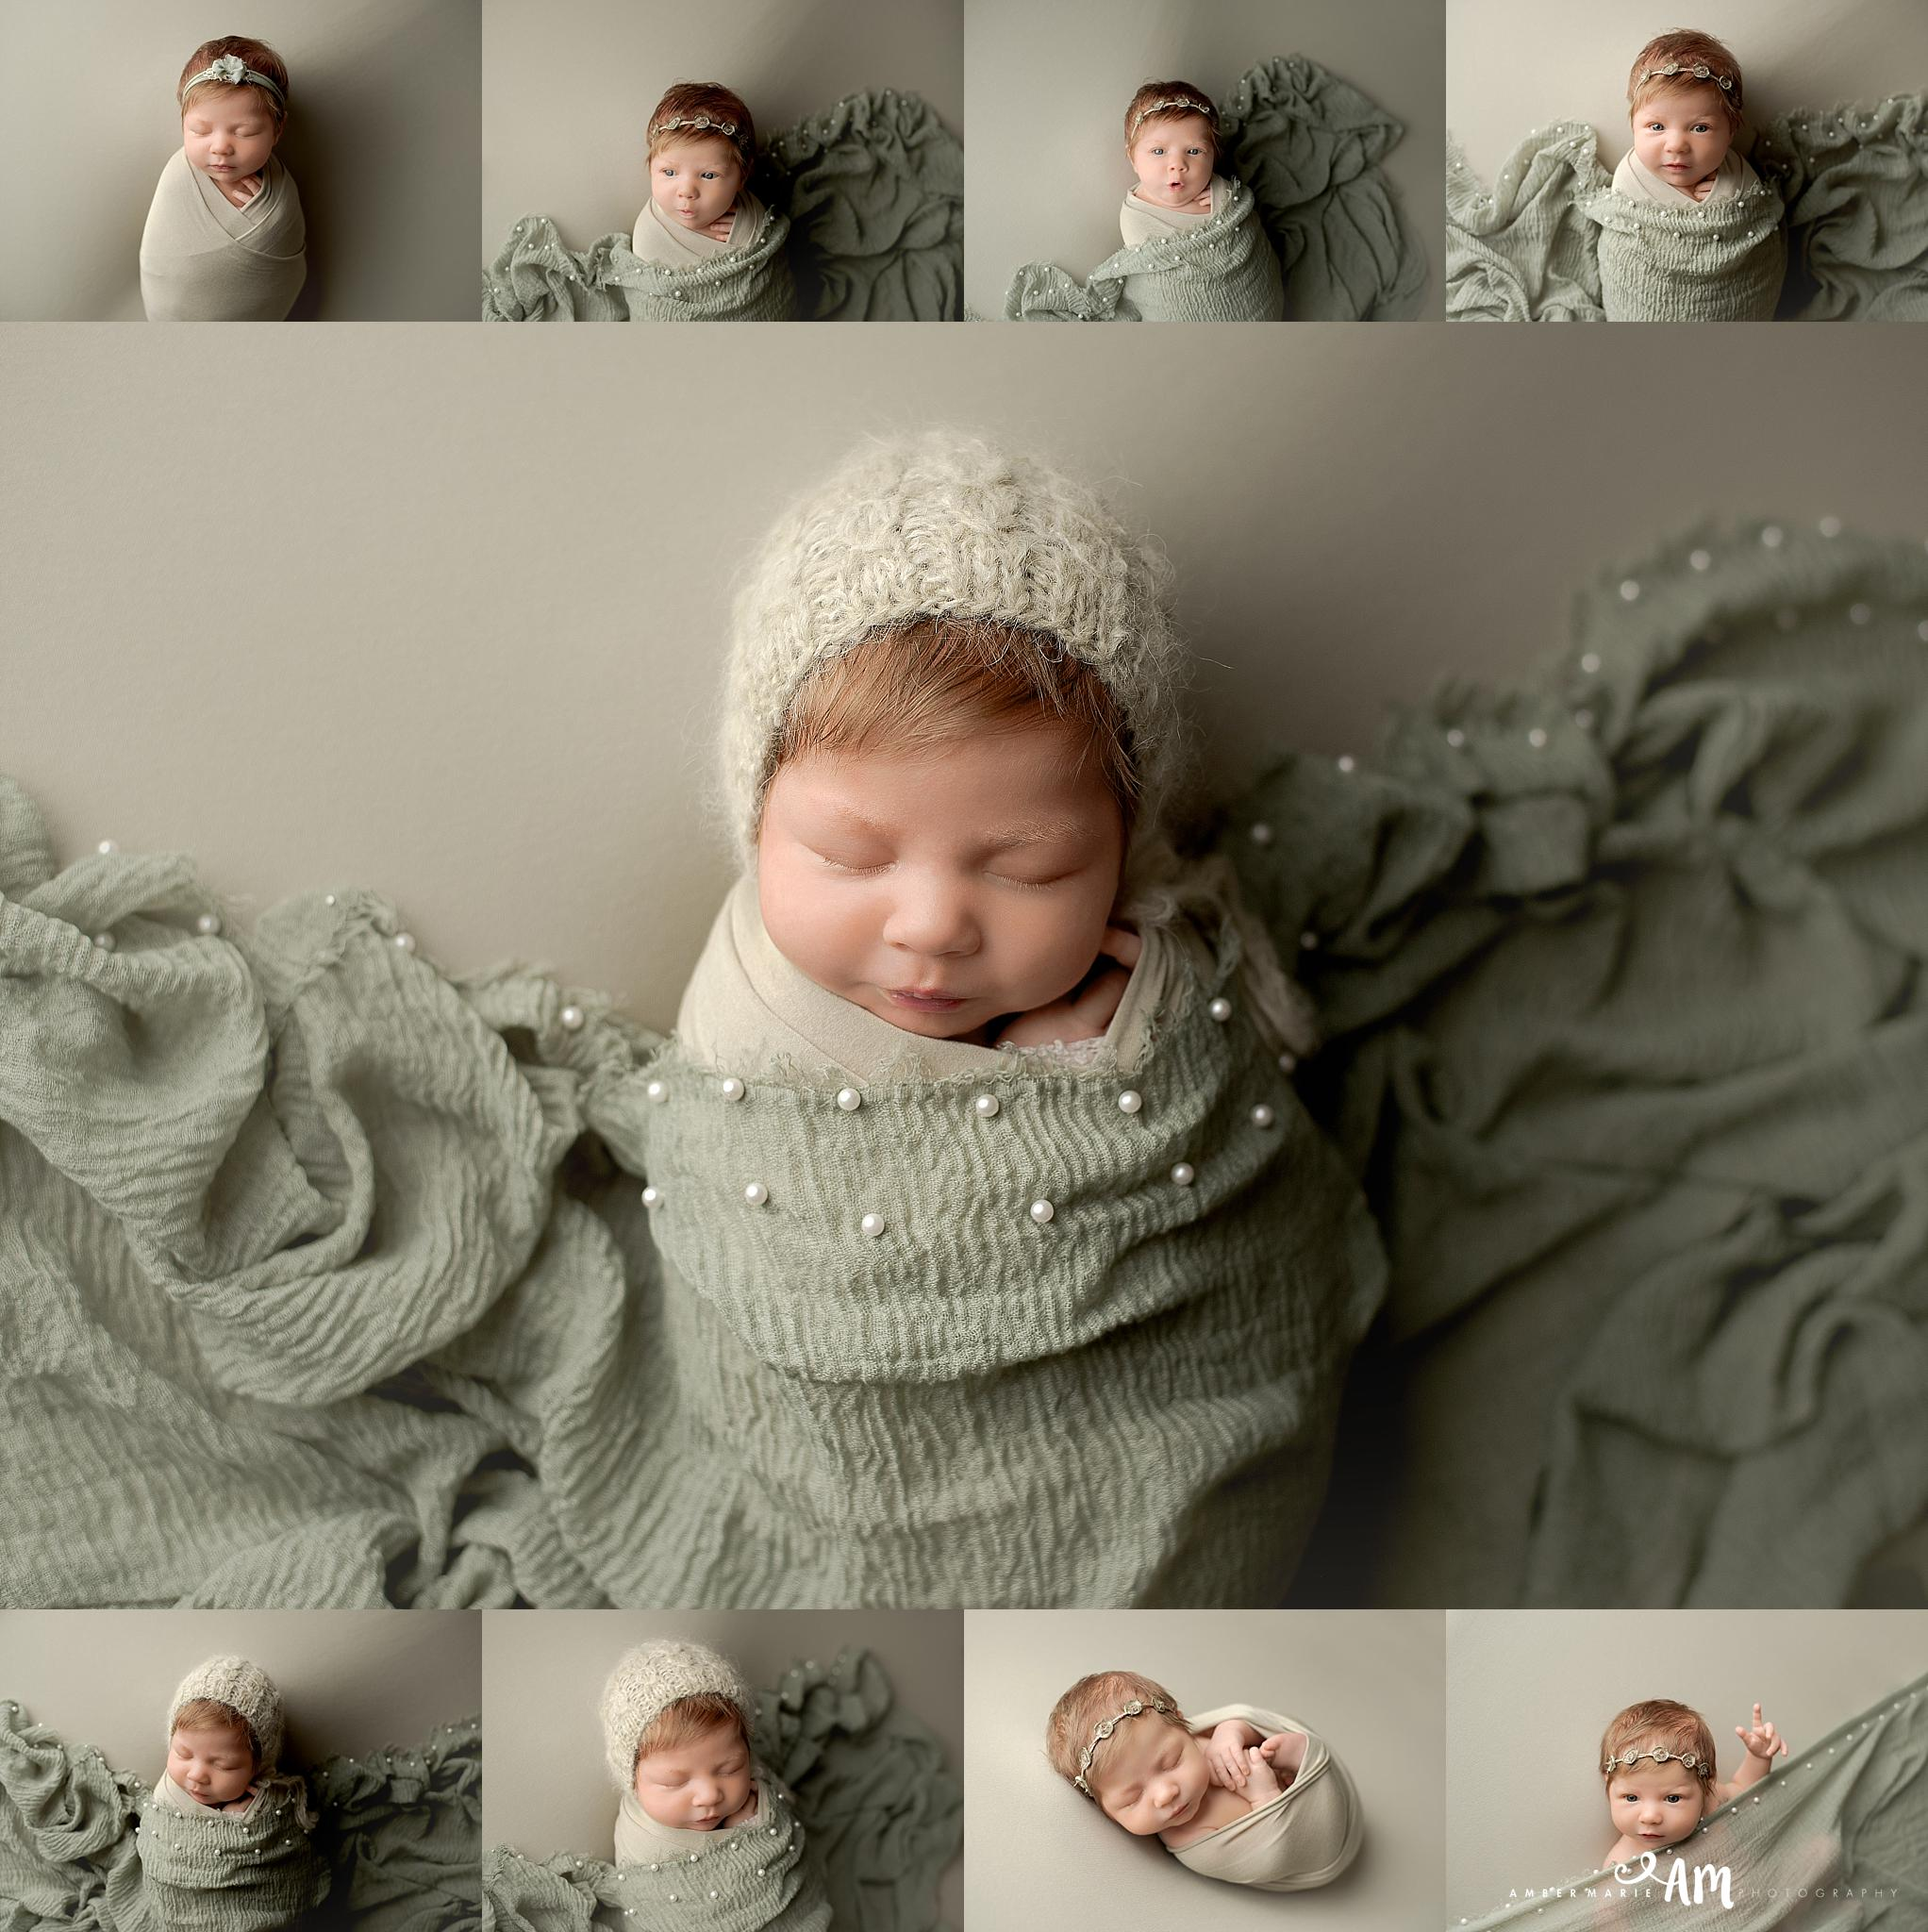 Northfield_Newborn_Photographer13.jpg